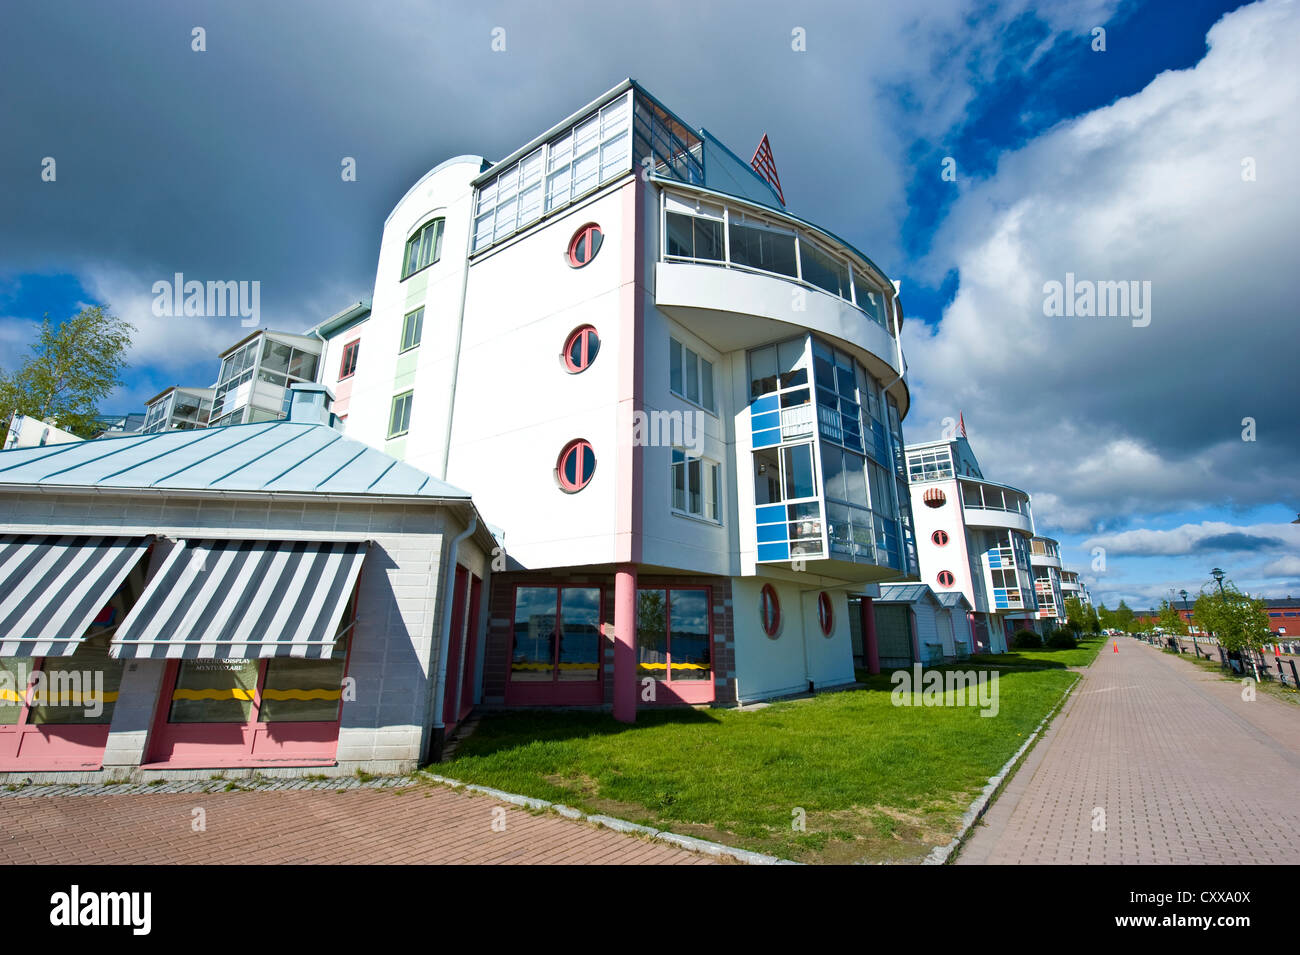 A modern house by the Gulf of Bothnia in Luleå, Norrbotten County, Sweden. - Stock Image